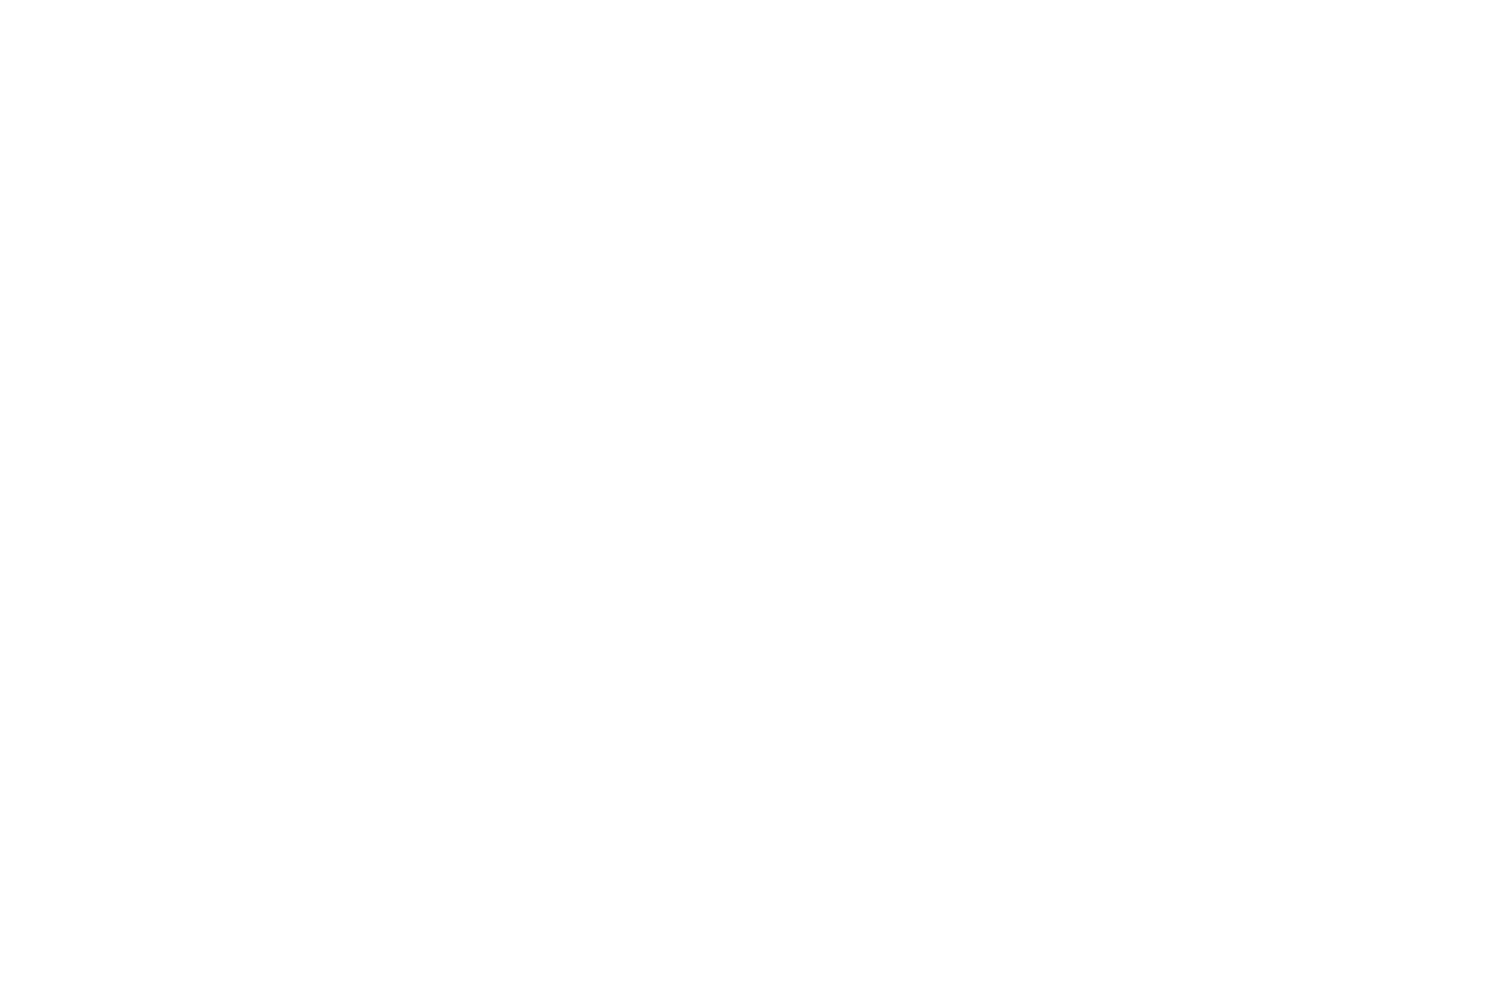 Kristi Charish, Author